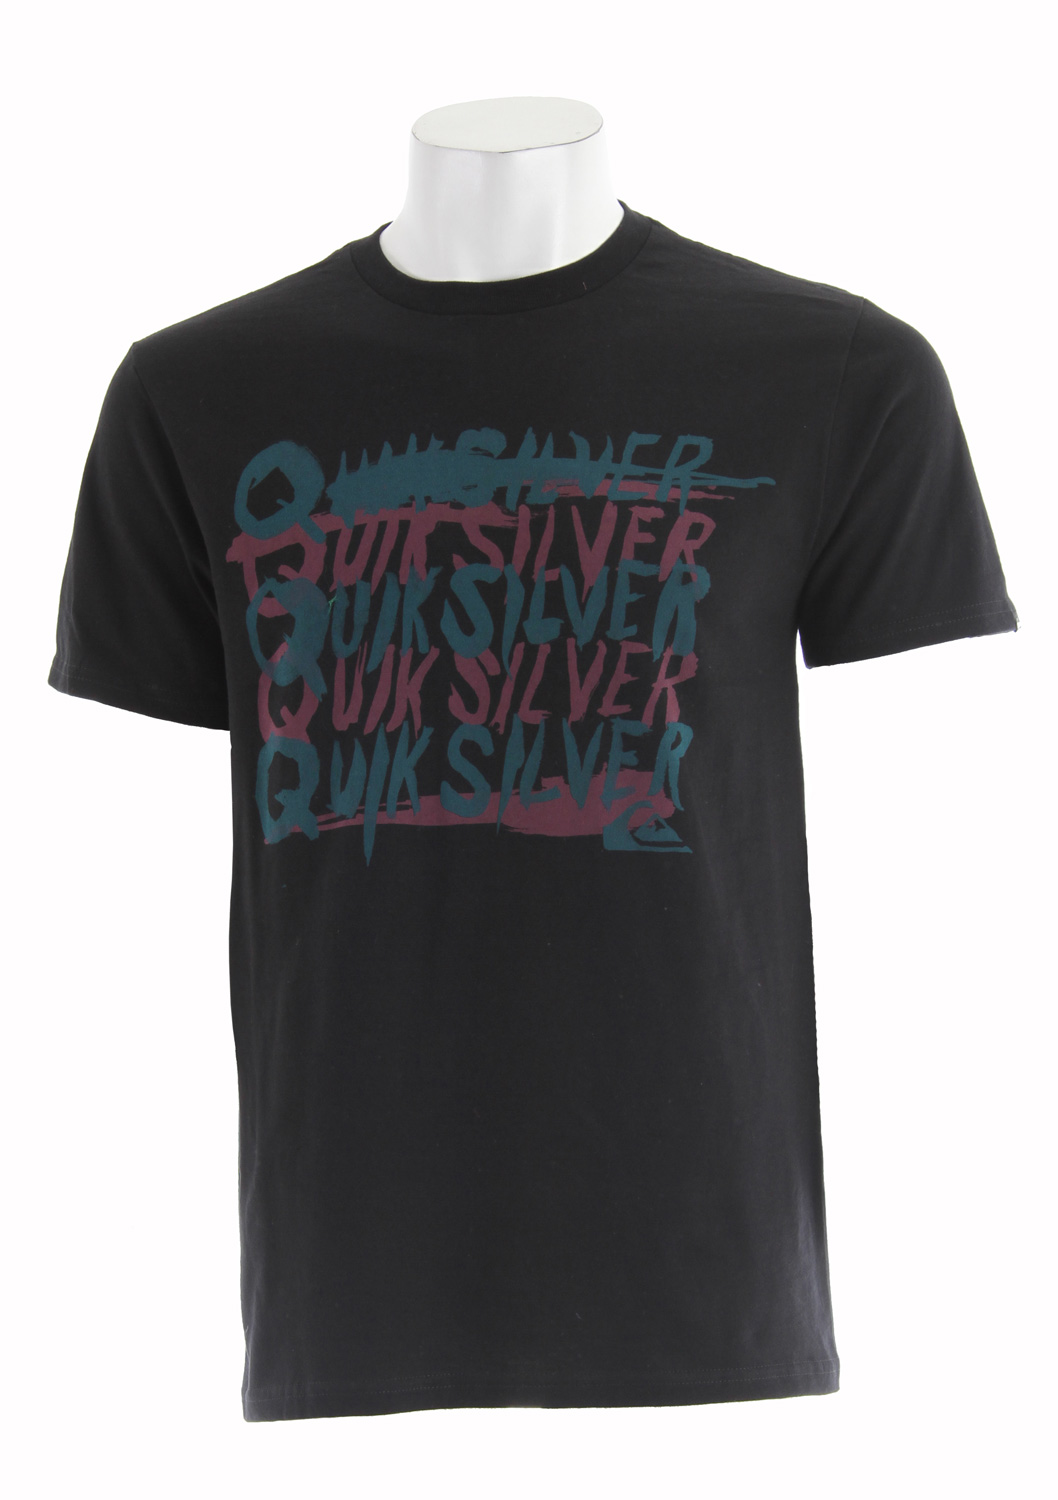 Surf Quiksilver Repeater T-Shirt - $14.95